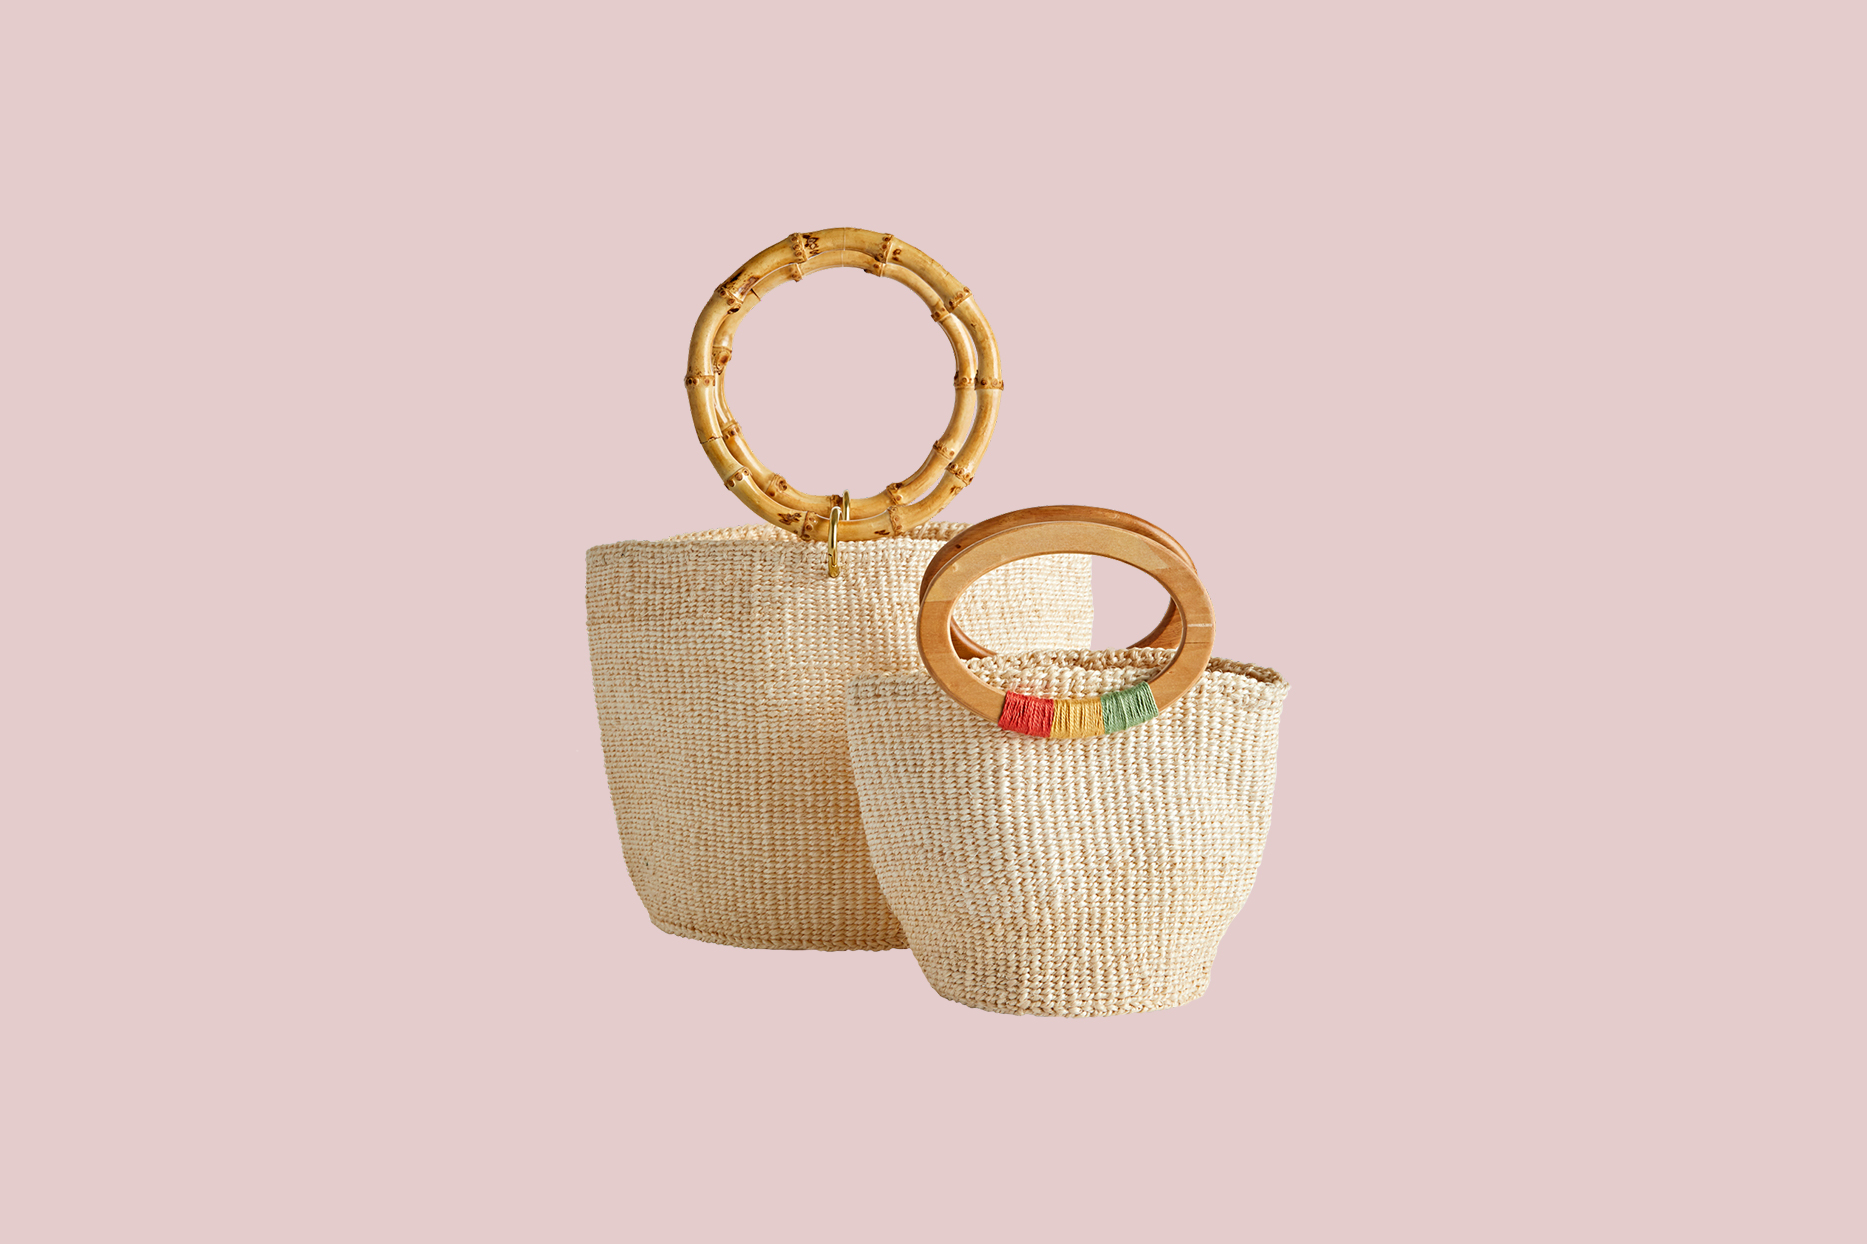 Two woven totes